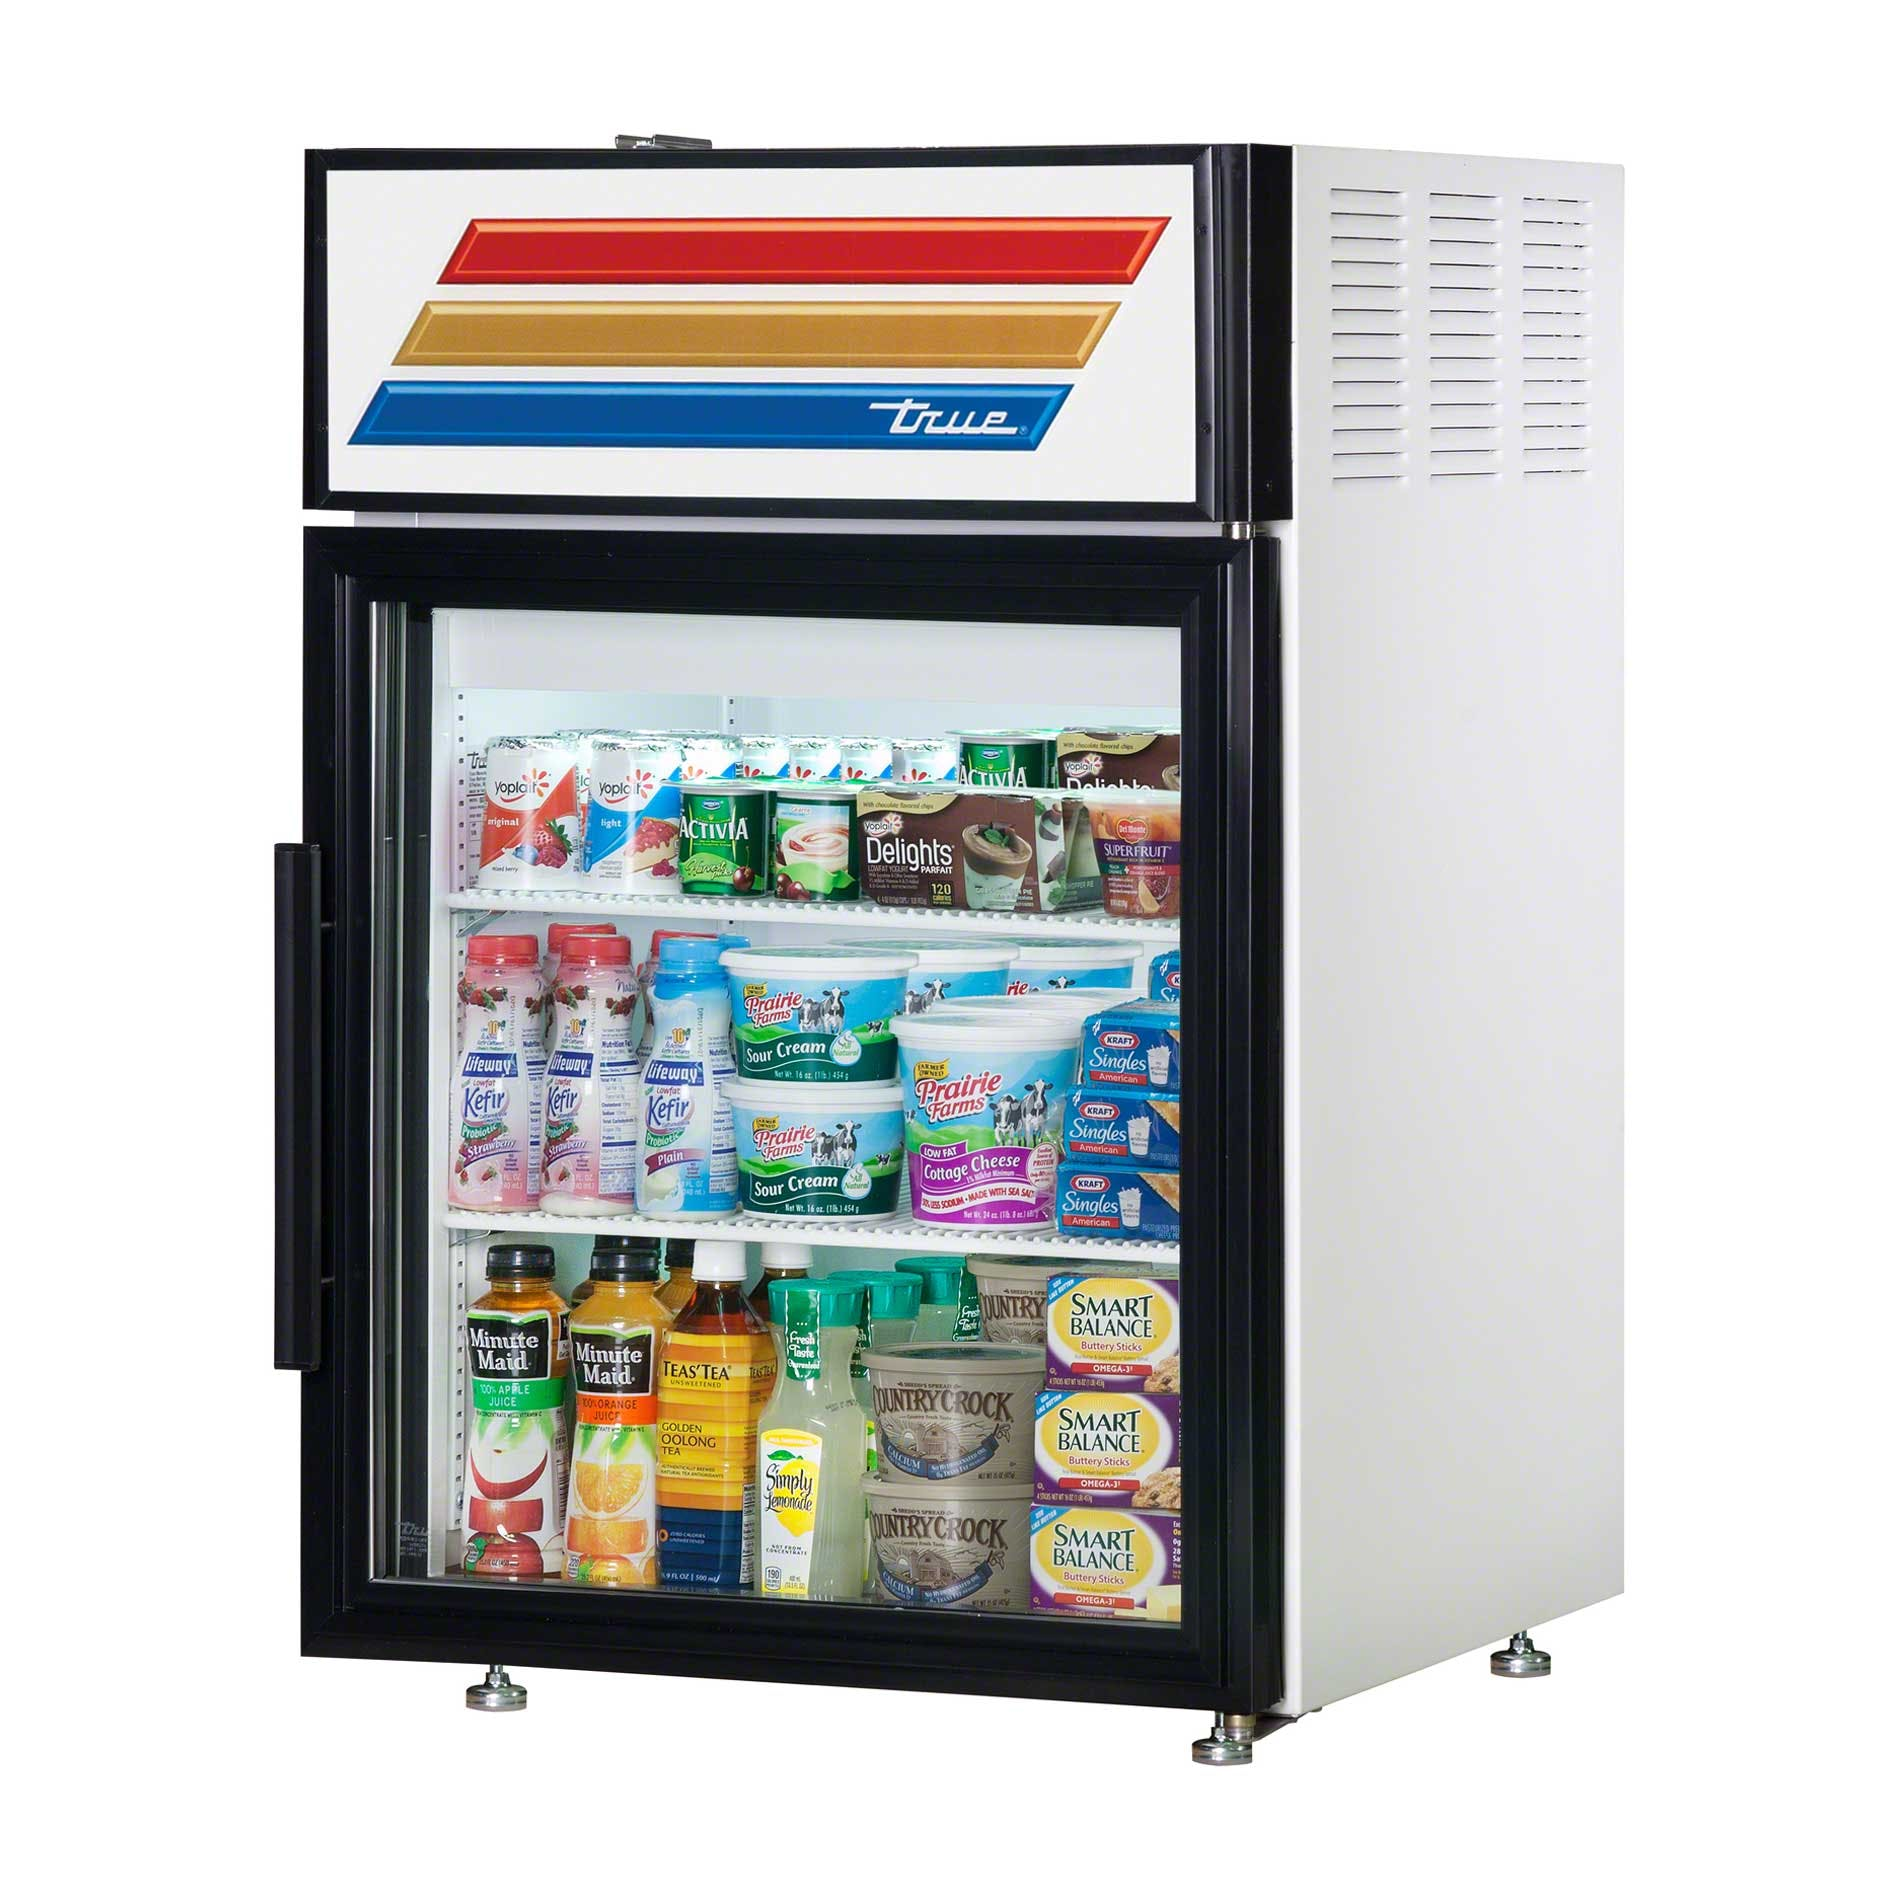 "True - GDM-5-LD 24"" Countertop Glass Door Merchandiser Refrigerator LED Commercial refrigerator sold by Food Service Warehouse"